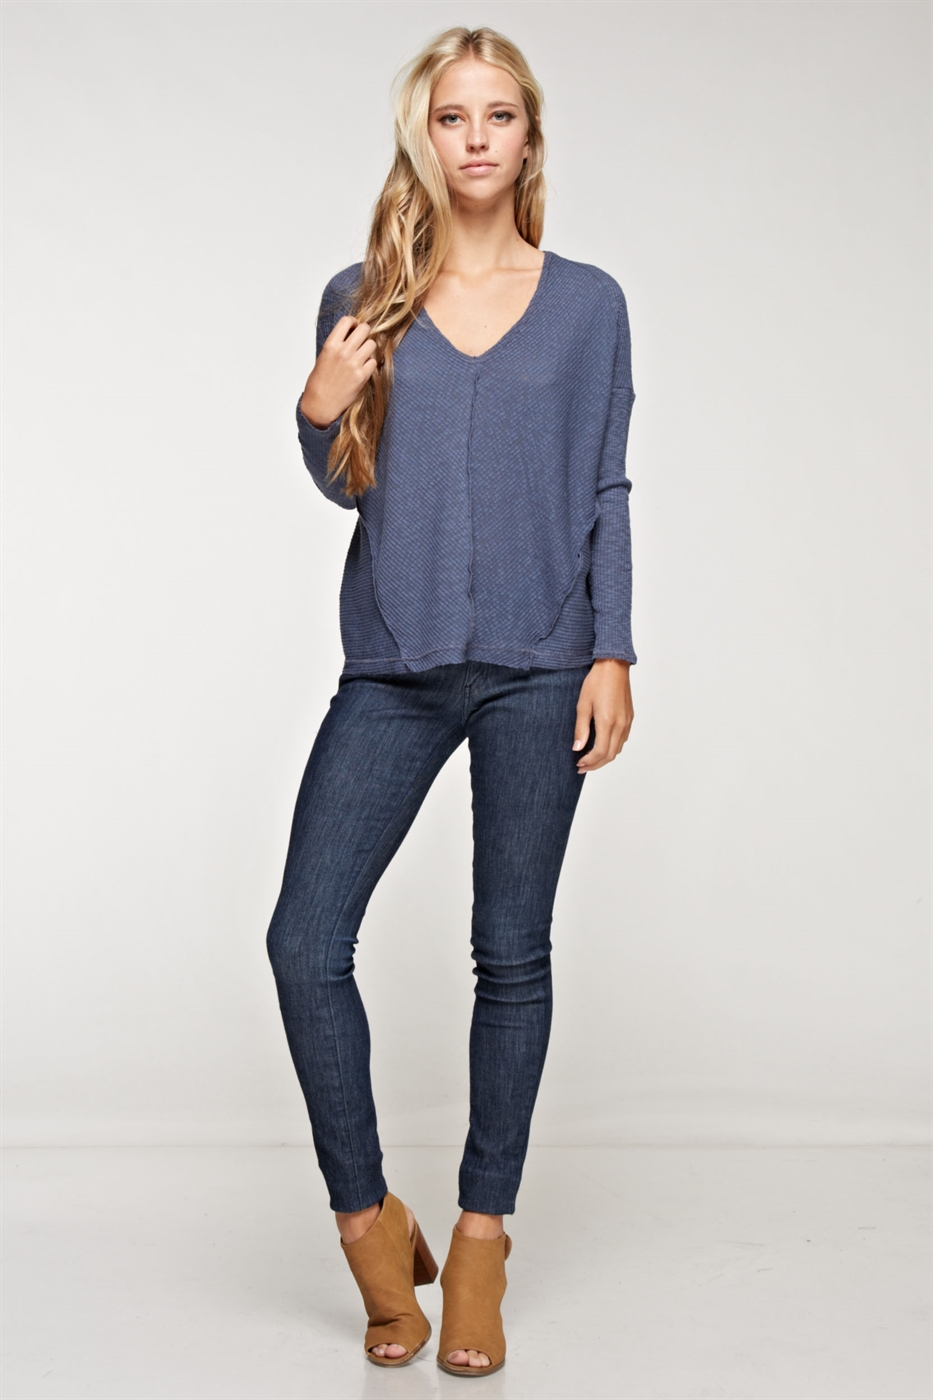 V-Neck long sleeve top - orangeshine.com